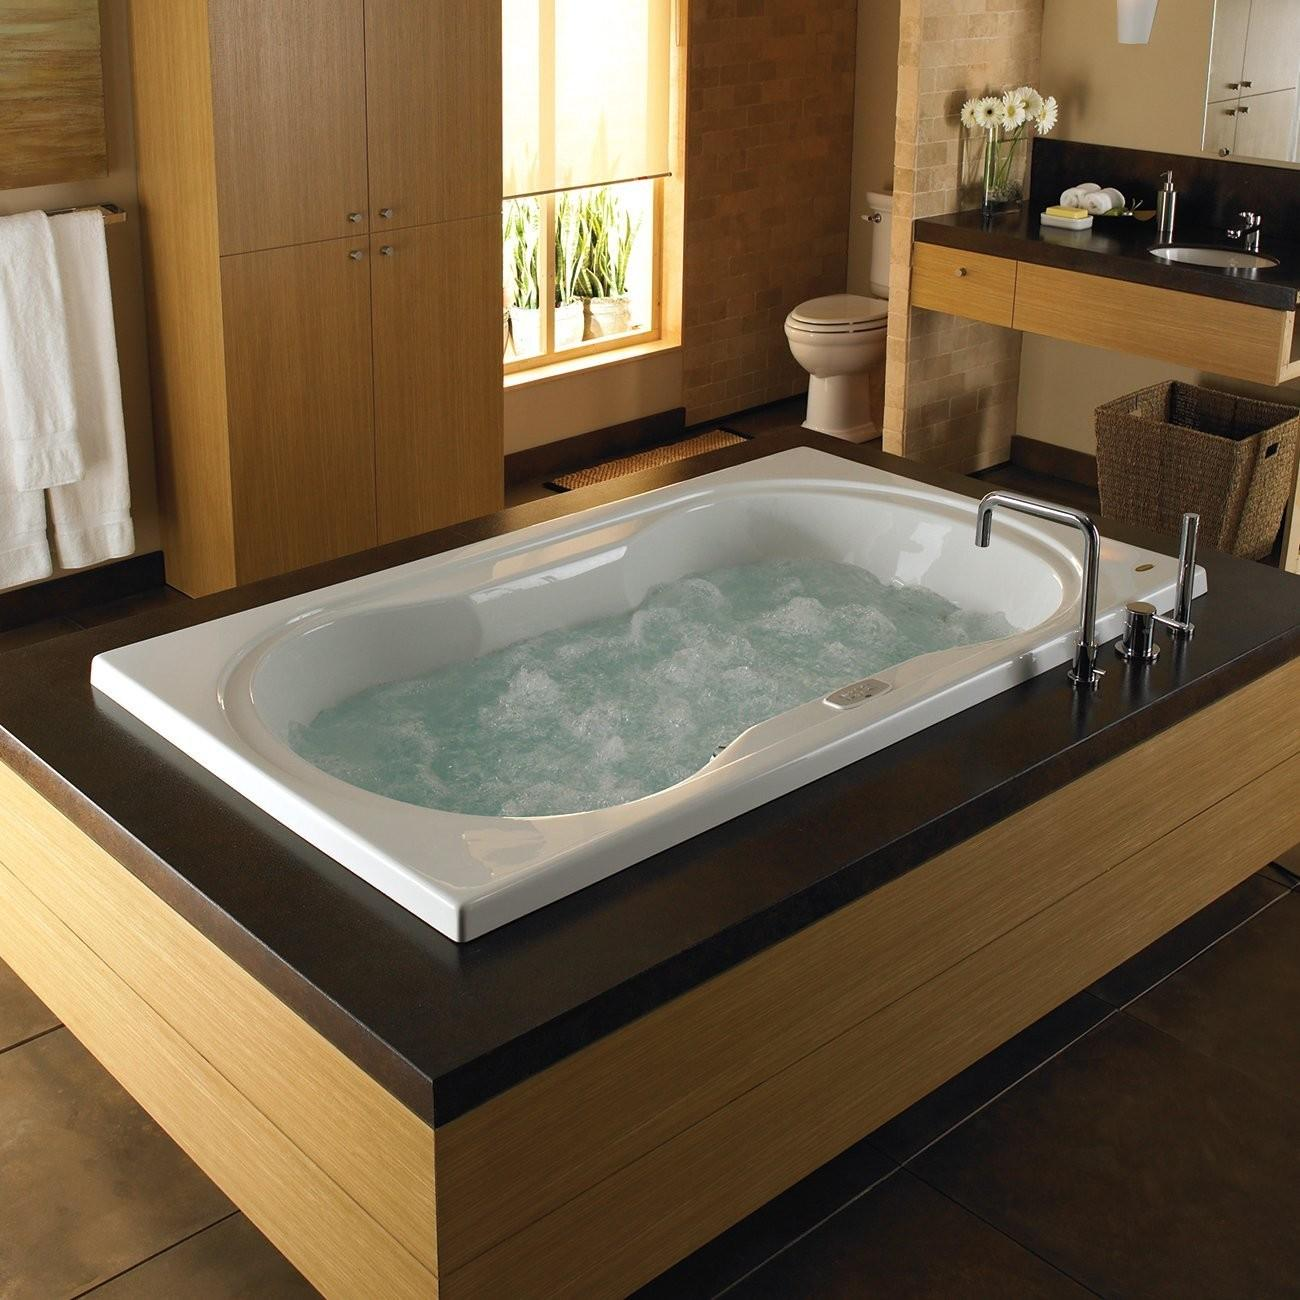 Jacuzzi Bath Tubs Cozy Tub Unique Shaped